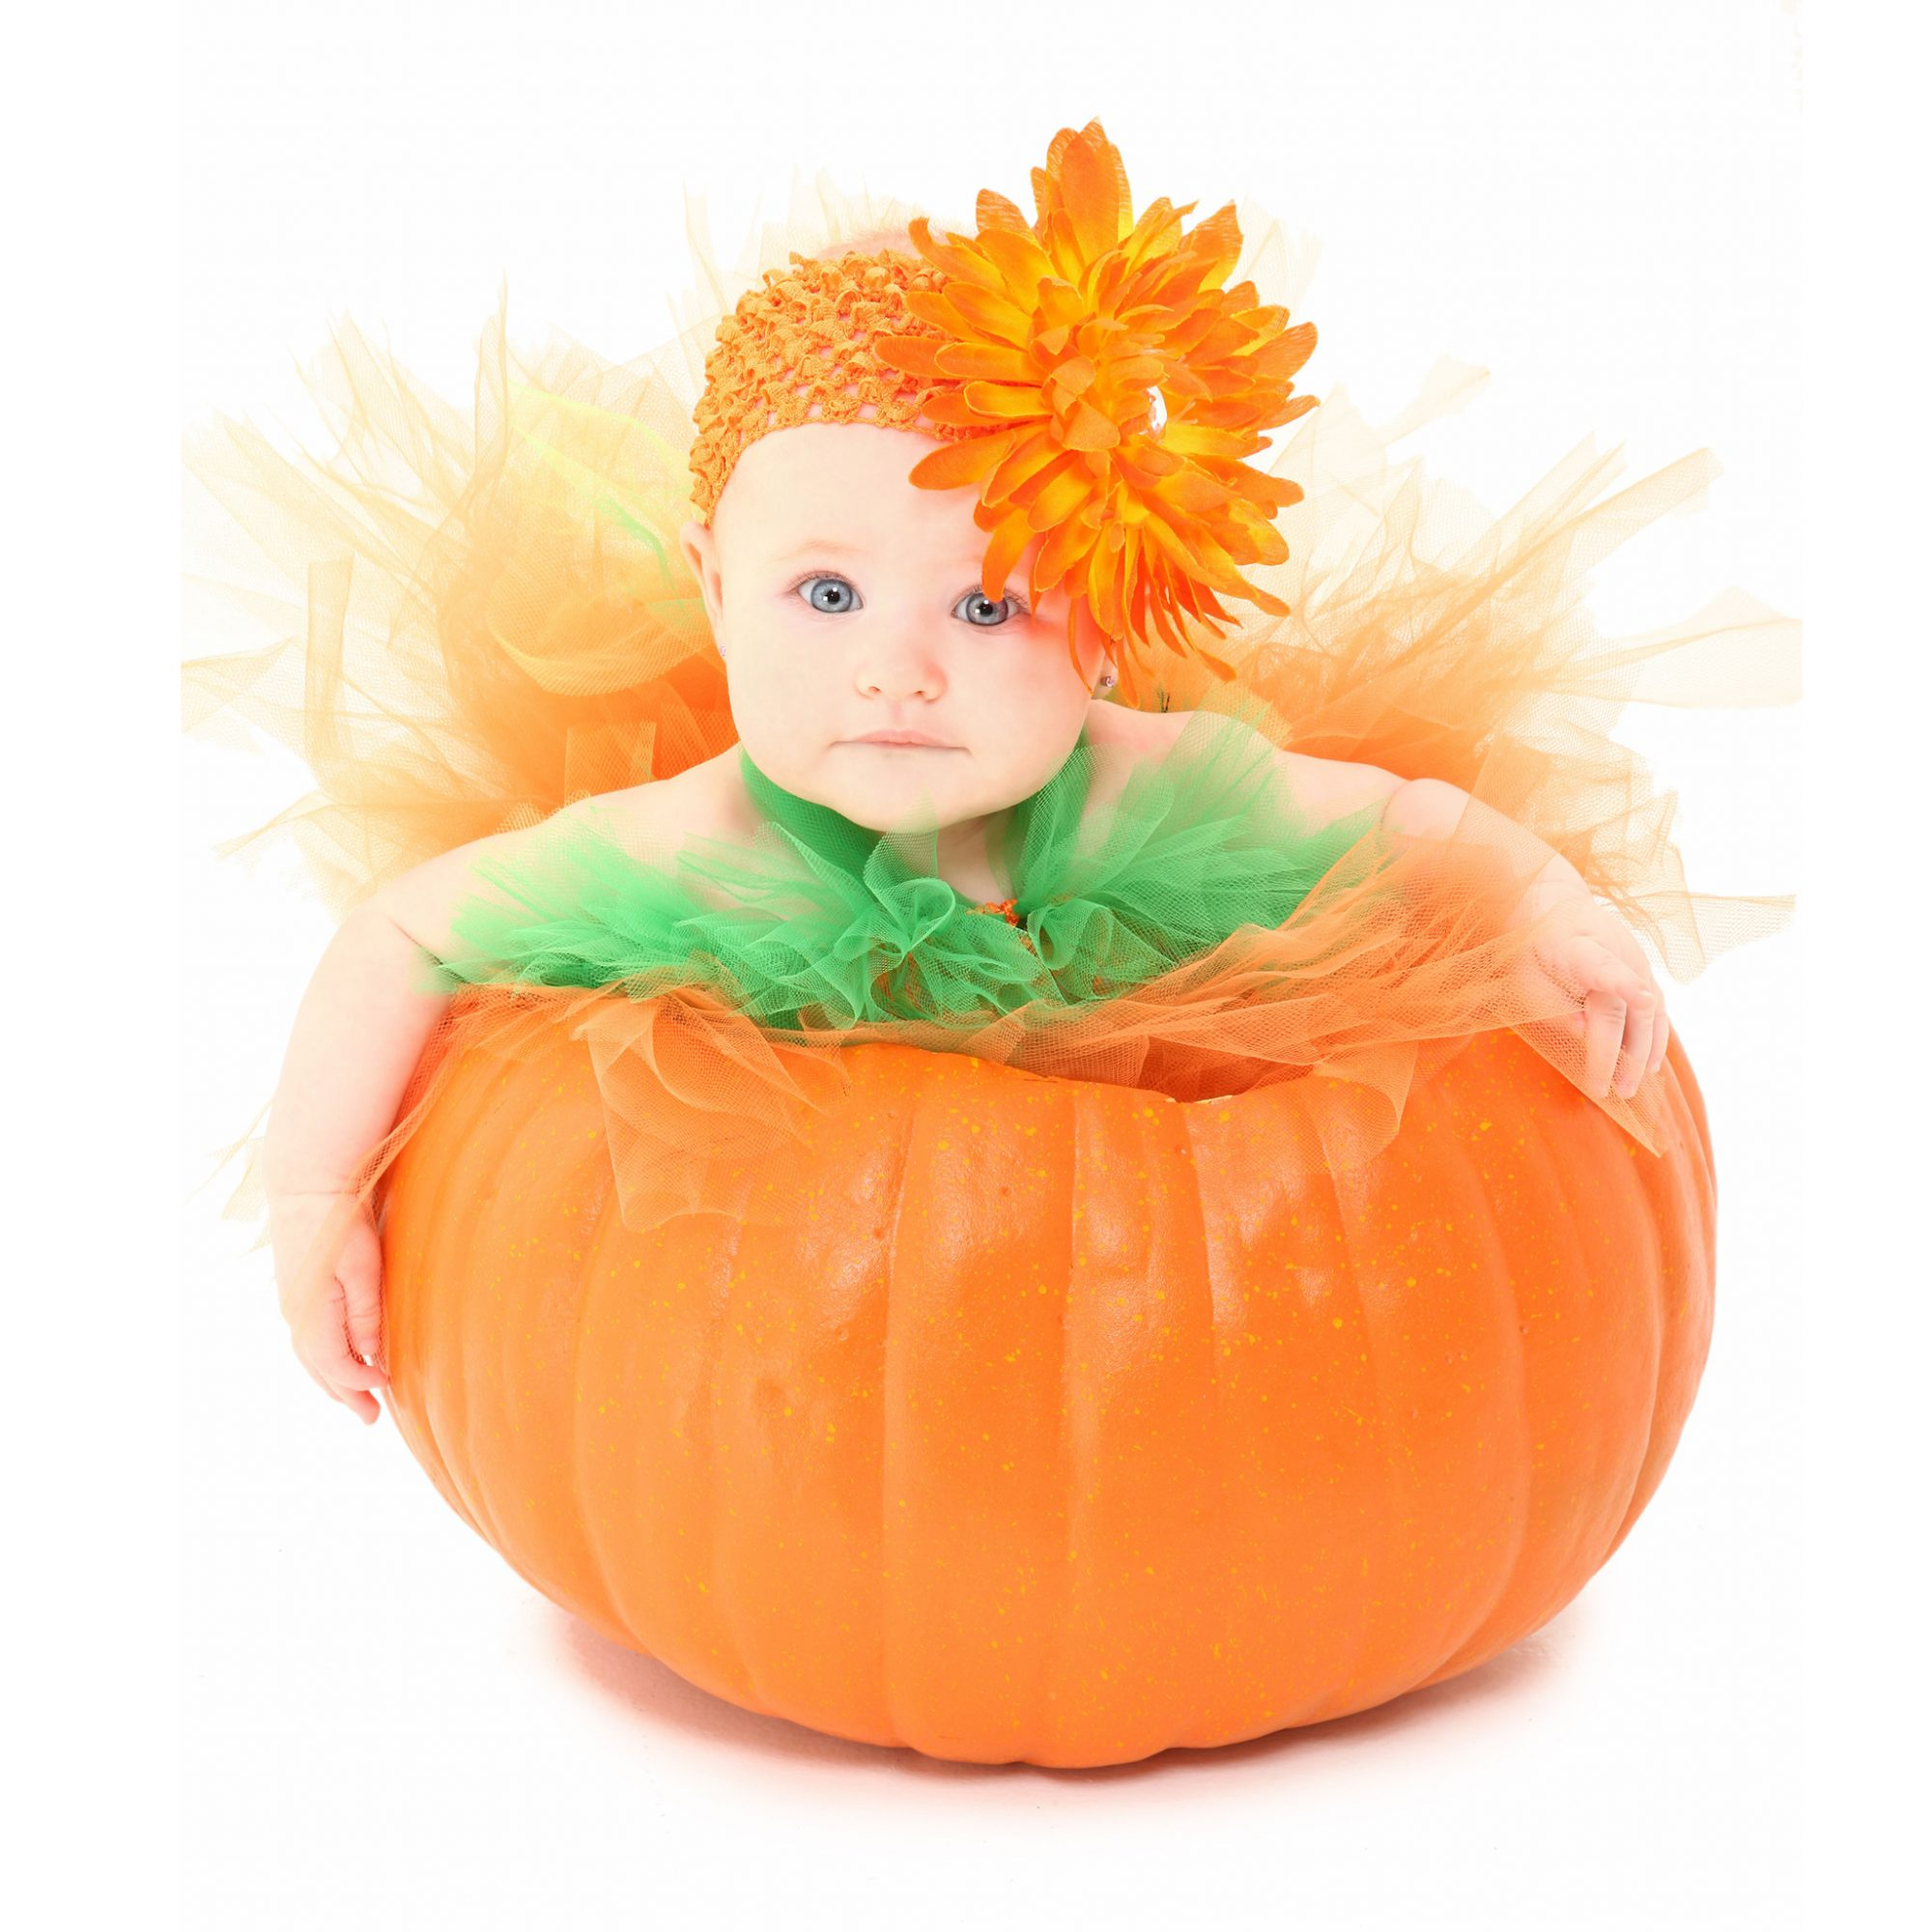 FWX ALTERNATIVE USES FOR PUMPKINS BABY_0_0